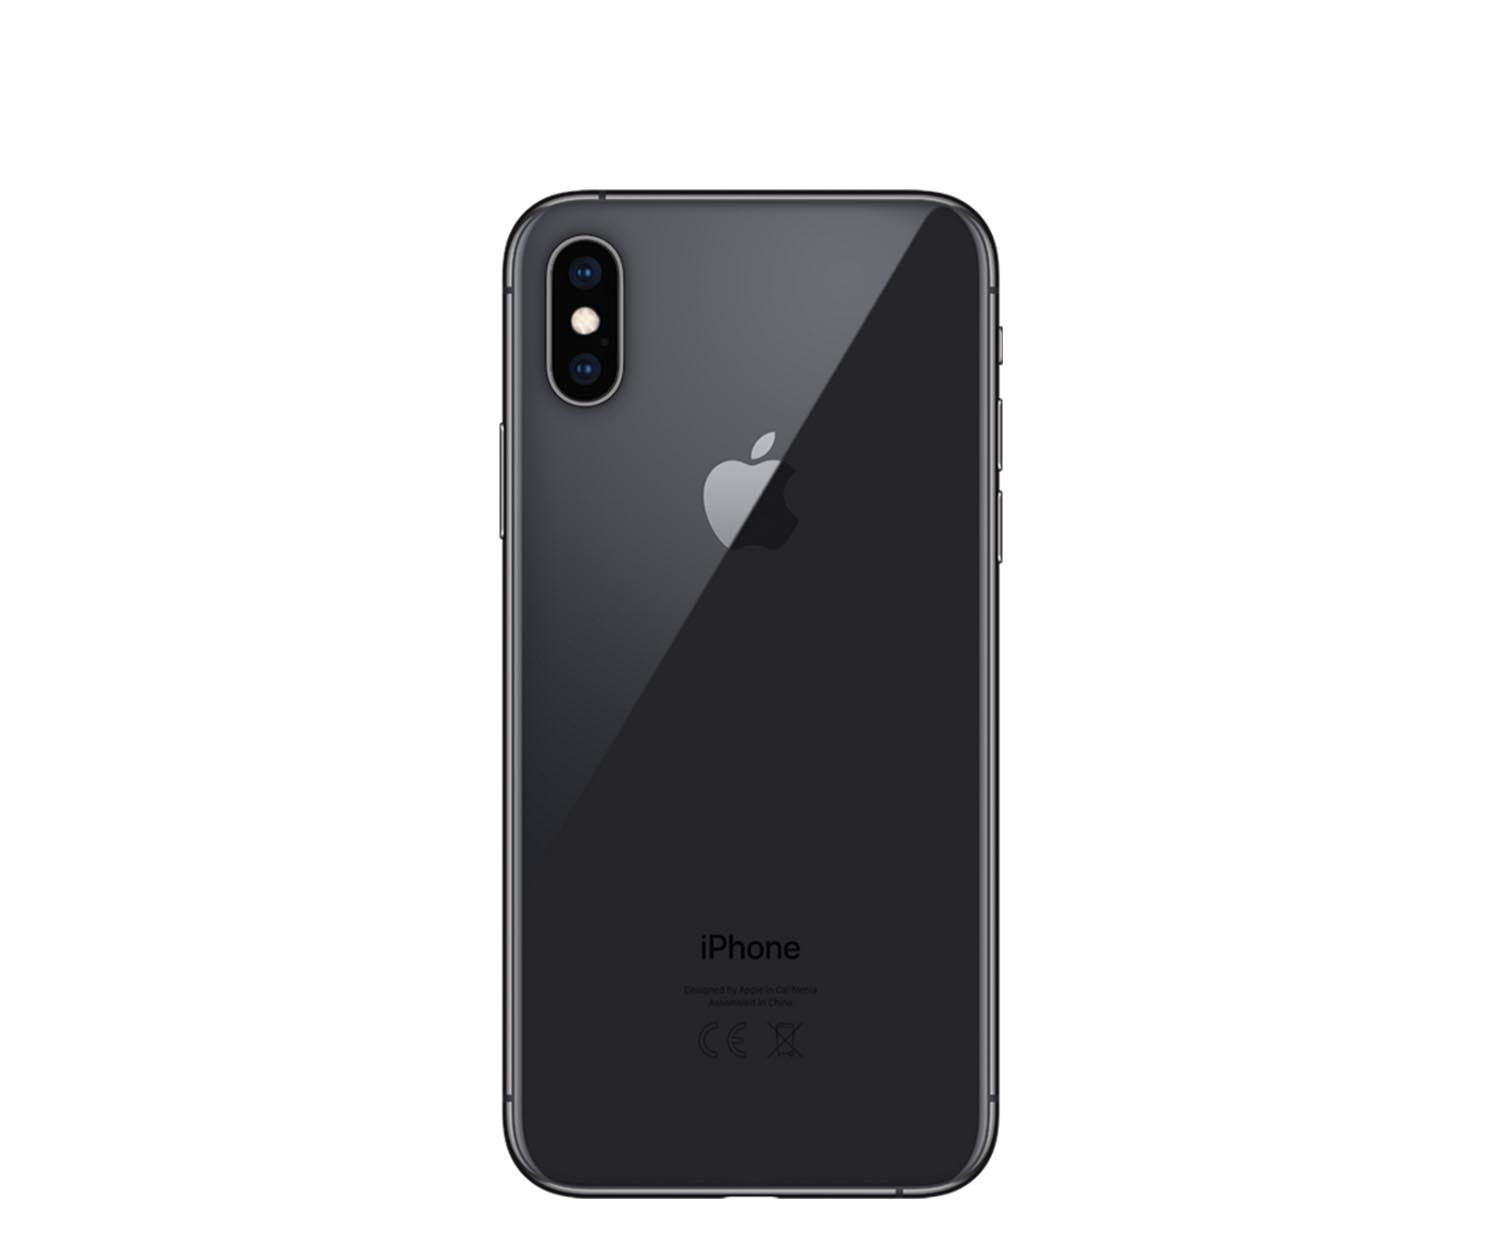 apple iphone xs 512 gb space grau. Black Bedroom Furniture Sets. Home Design Ideas